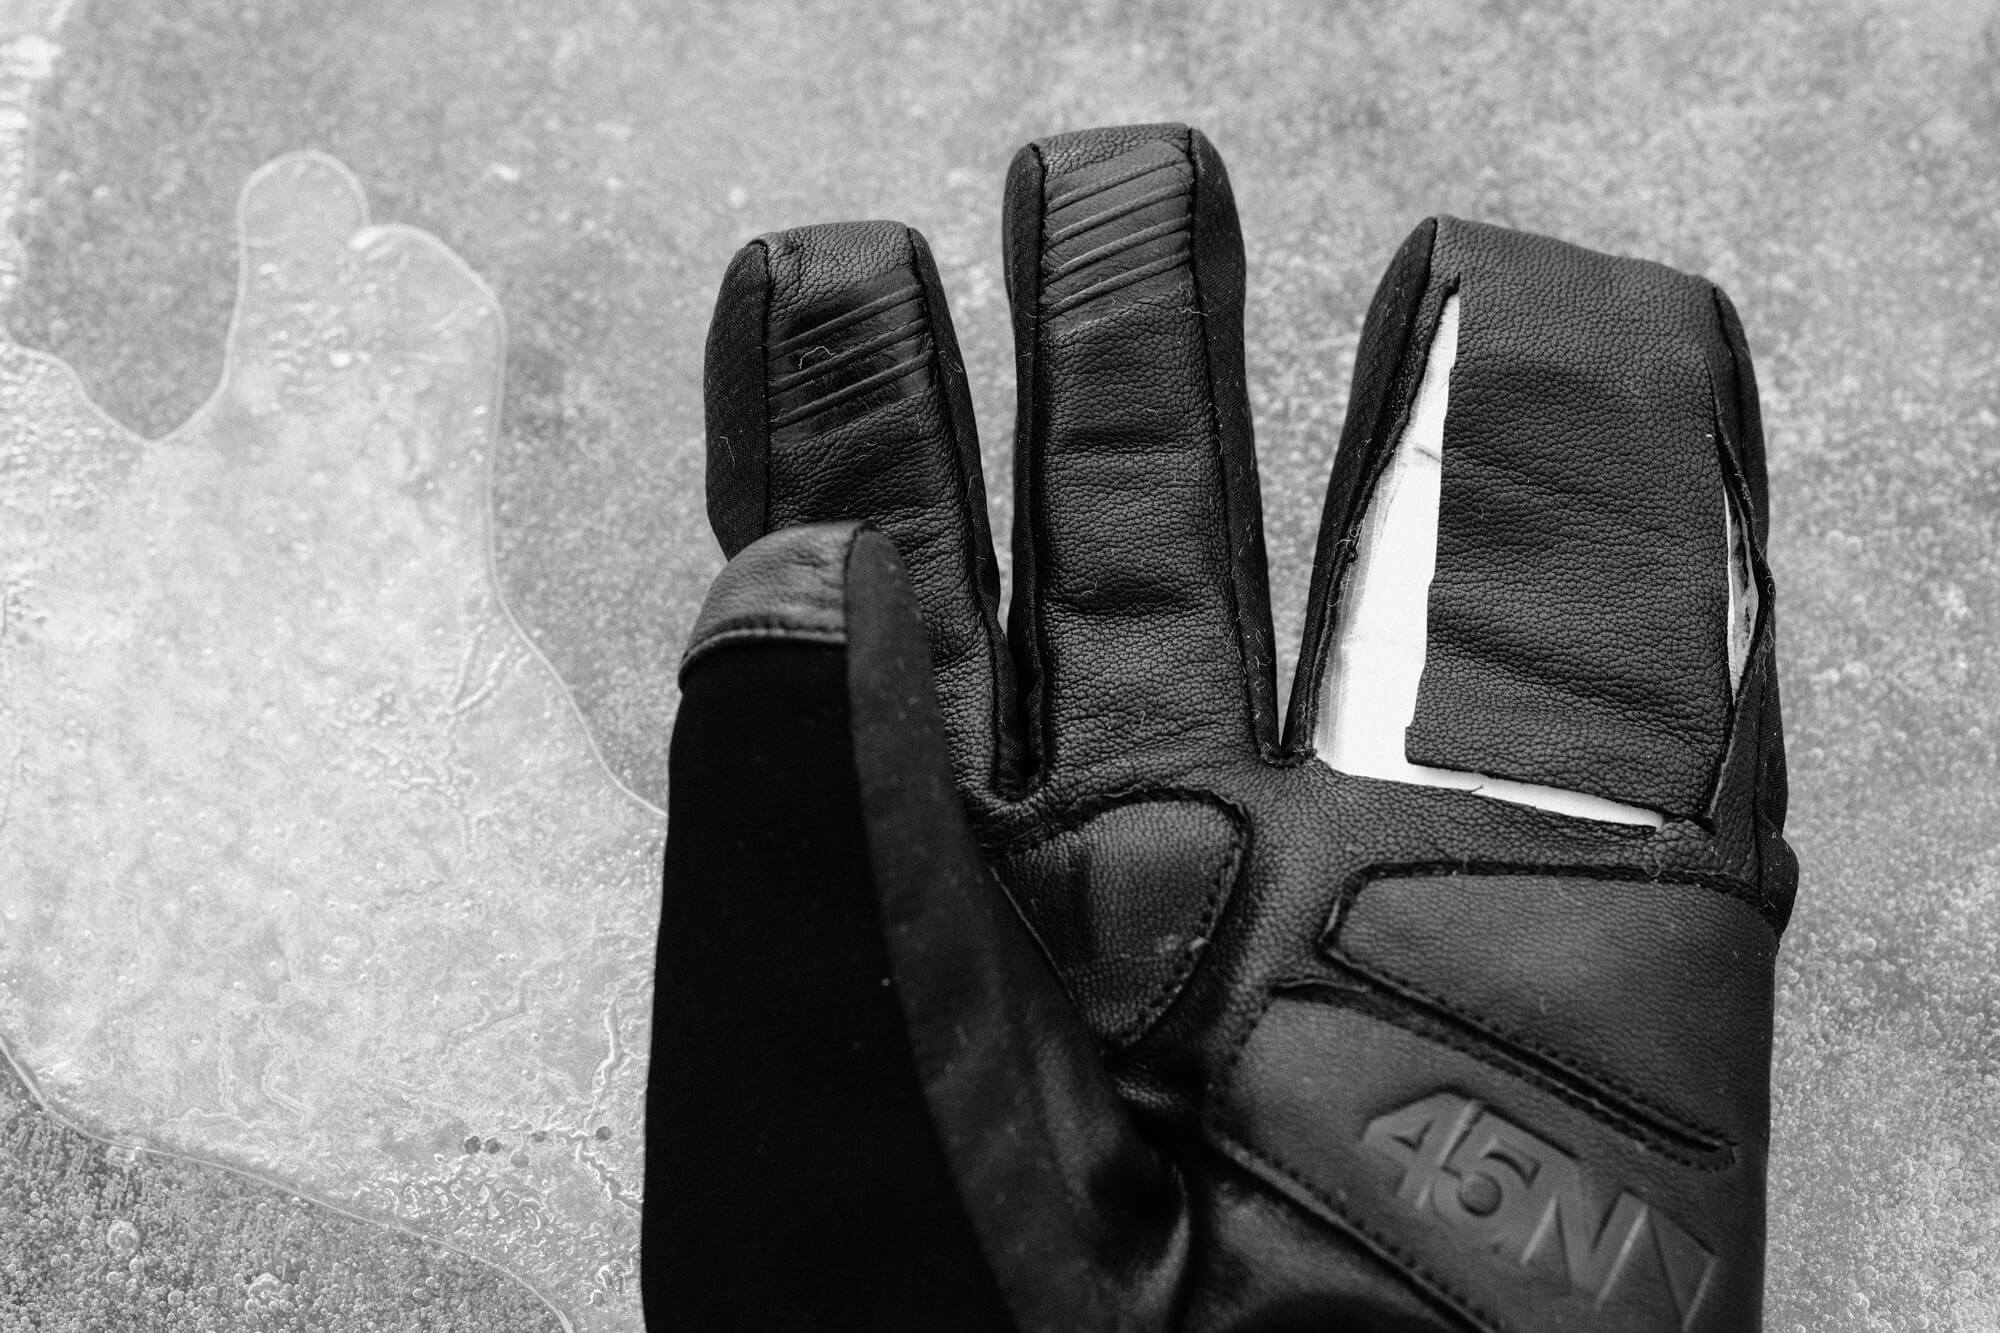 A 45NRTH Sturmfist 4 glove with goatskin leather lining the palm for protection